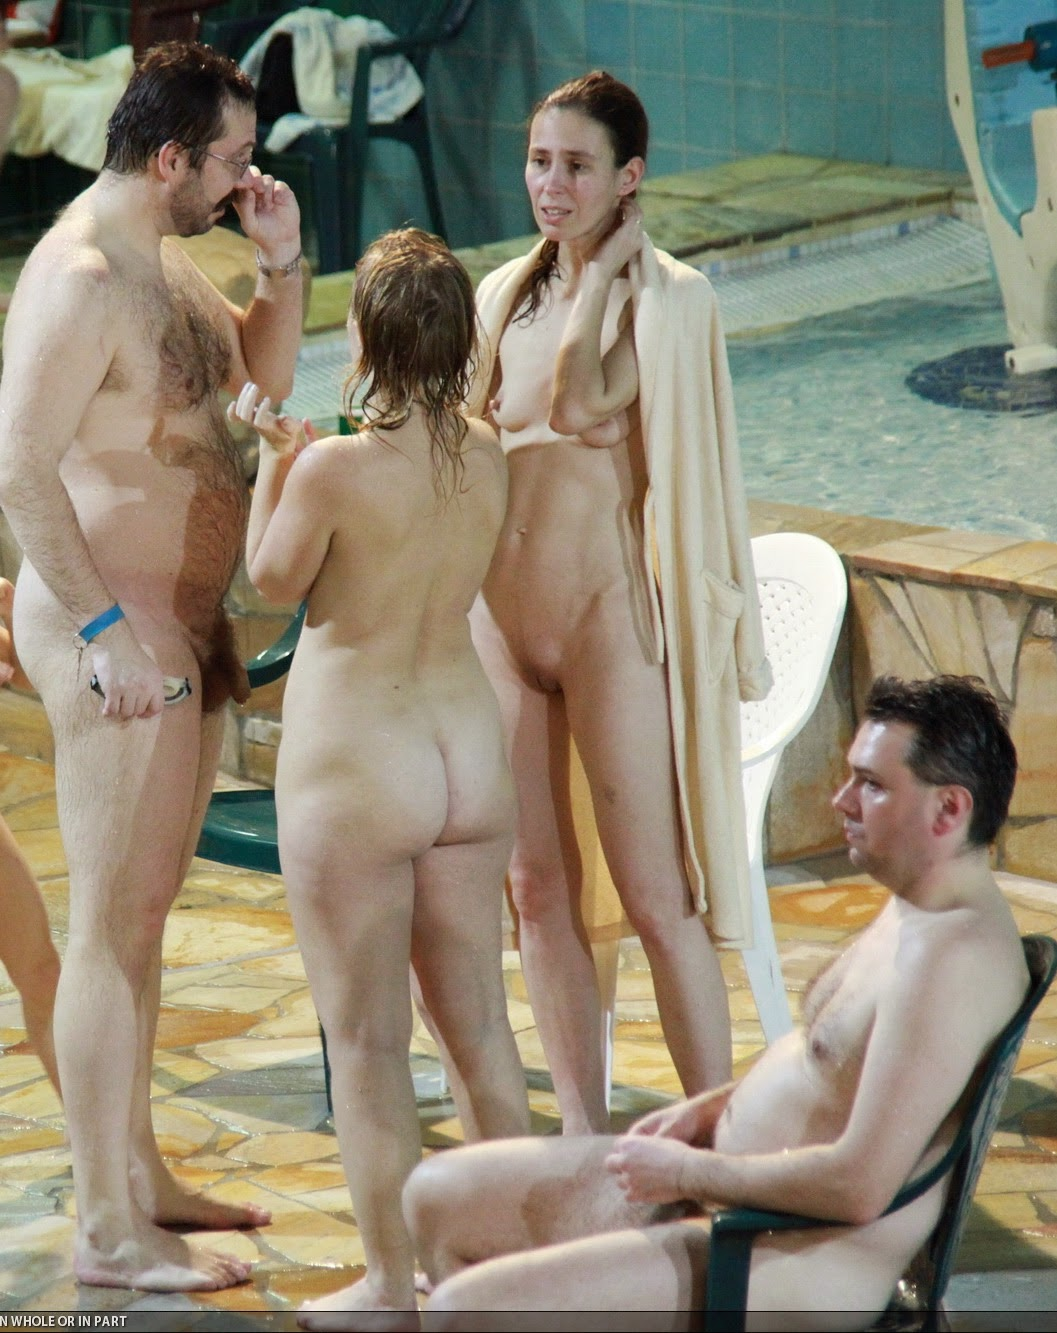 nudity at the water park